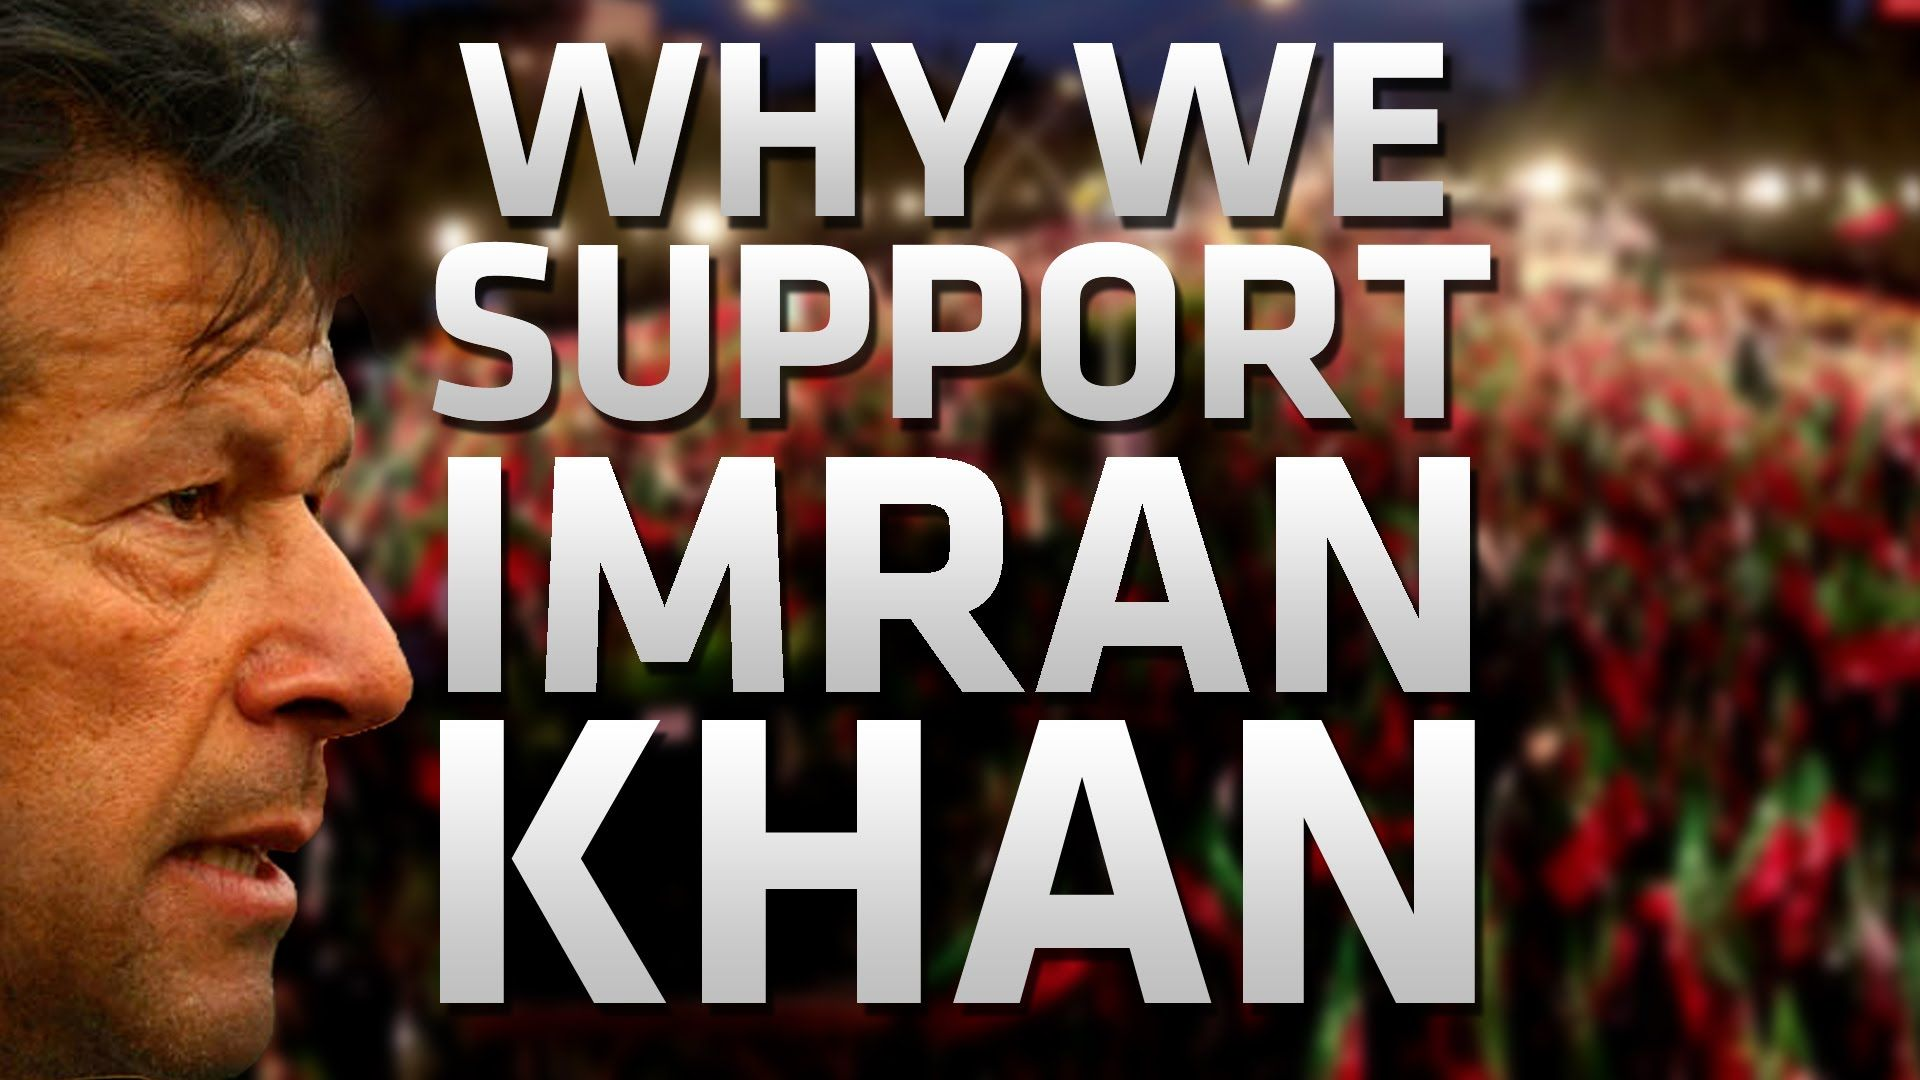 Why We Support Imran Khan Read an excerpt of this speech here: http://www.goharshahi.us/news/view/wh...  His Holiness Younus AlGohar presents explanation for the international community as to why a large majority of Pakistanis support Imran Khan. His Holiness appeals to the international community not to support the corrupt Prime Minister, Nawaz Sharif, and not to mistranslate the situation in Pakistan.